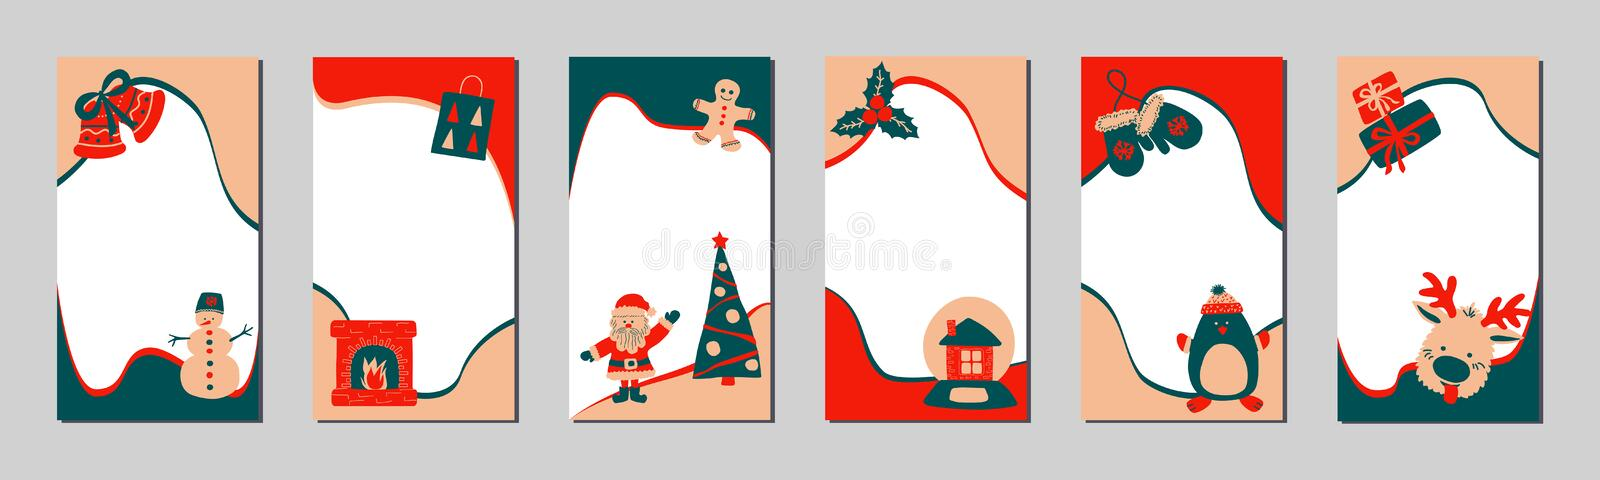 Set of Christmas stories template for social networks in the style of Scandinavian simple hand drawing. Holiday frames royalty free illustration